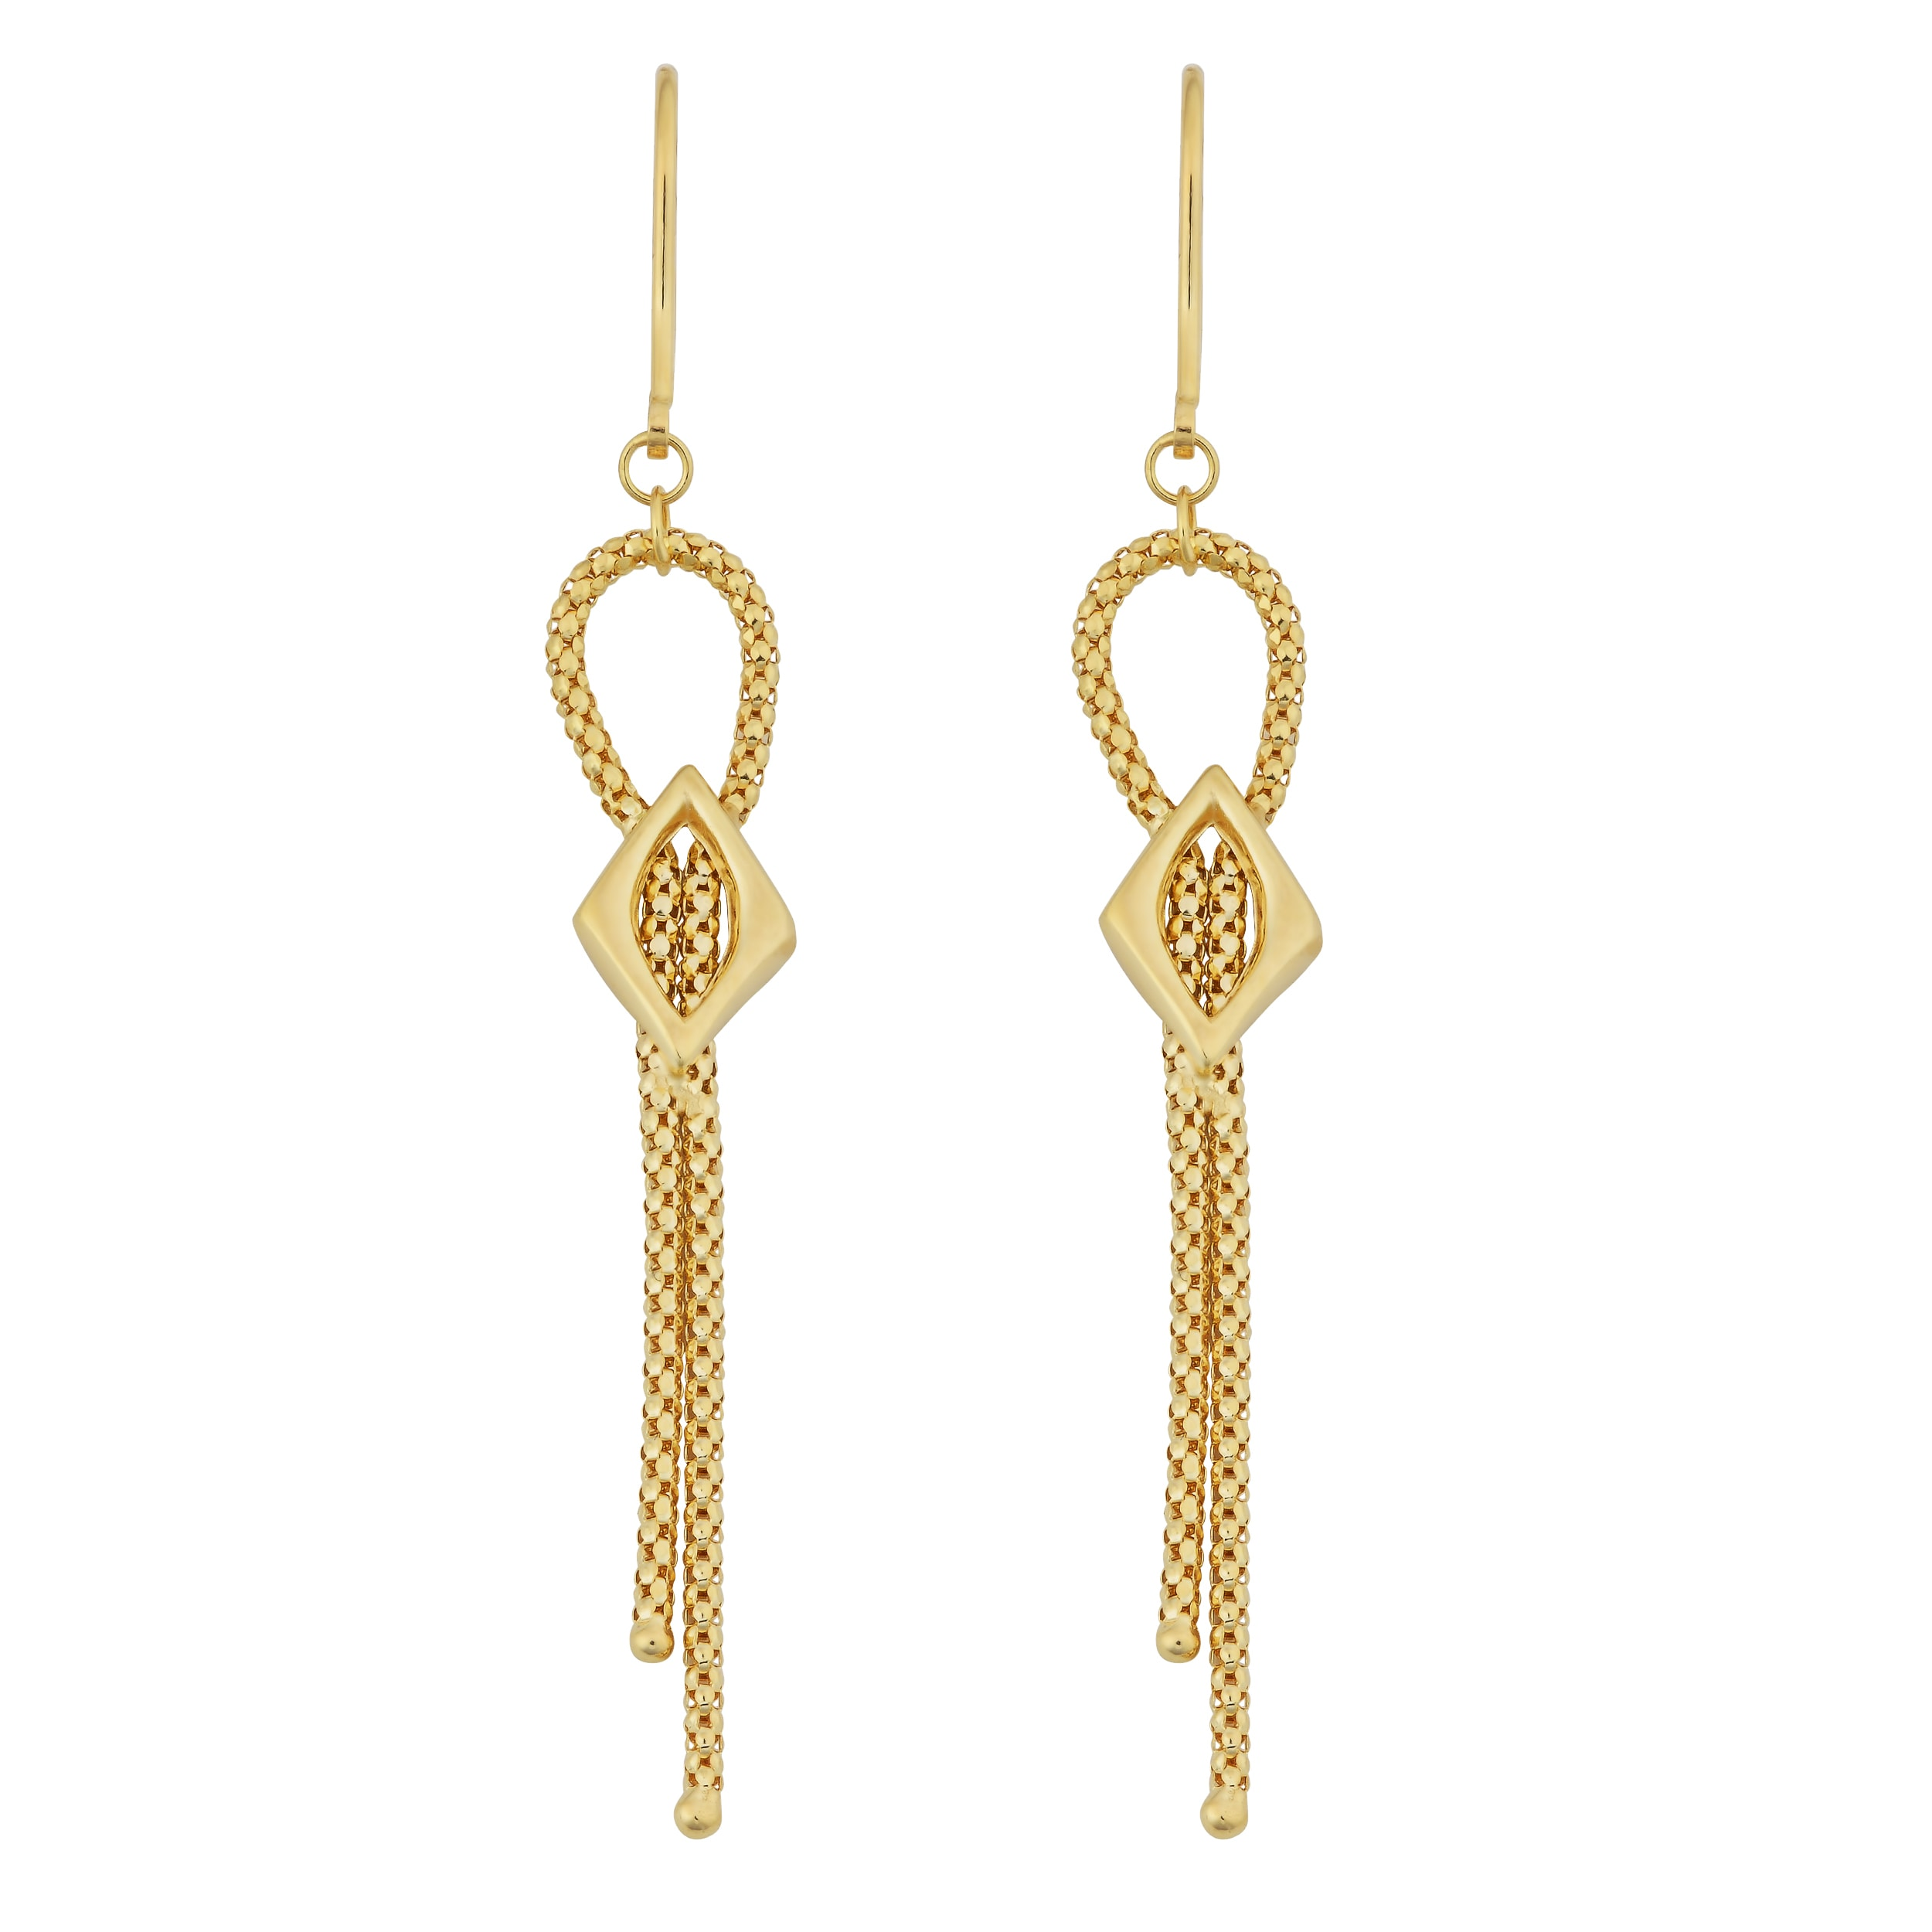 jewellery earrings singapore en diamond bysell gemstone italian gold gram by online